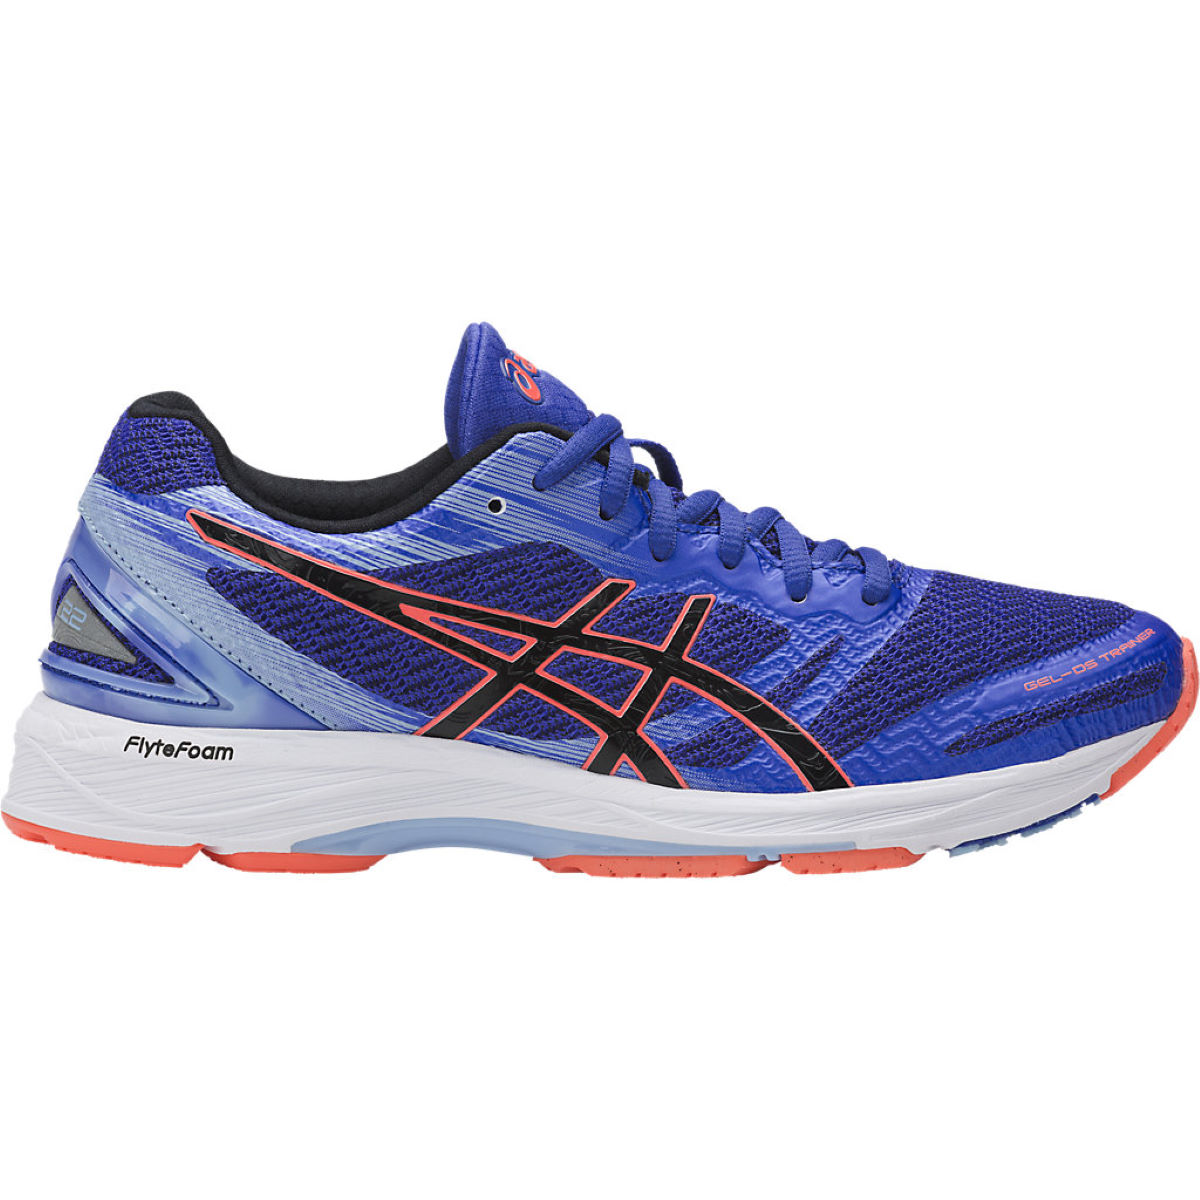 Chaussures Femme Asics Gel DS Trainer 22 - UK 4 Blue Purple/Black/Fl